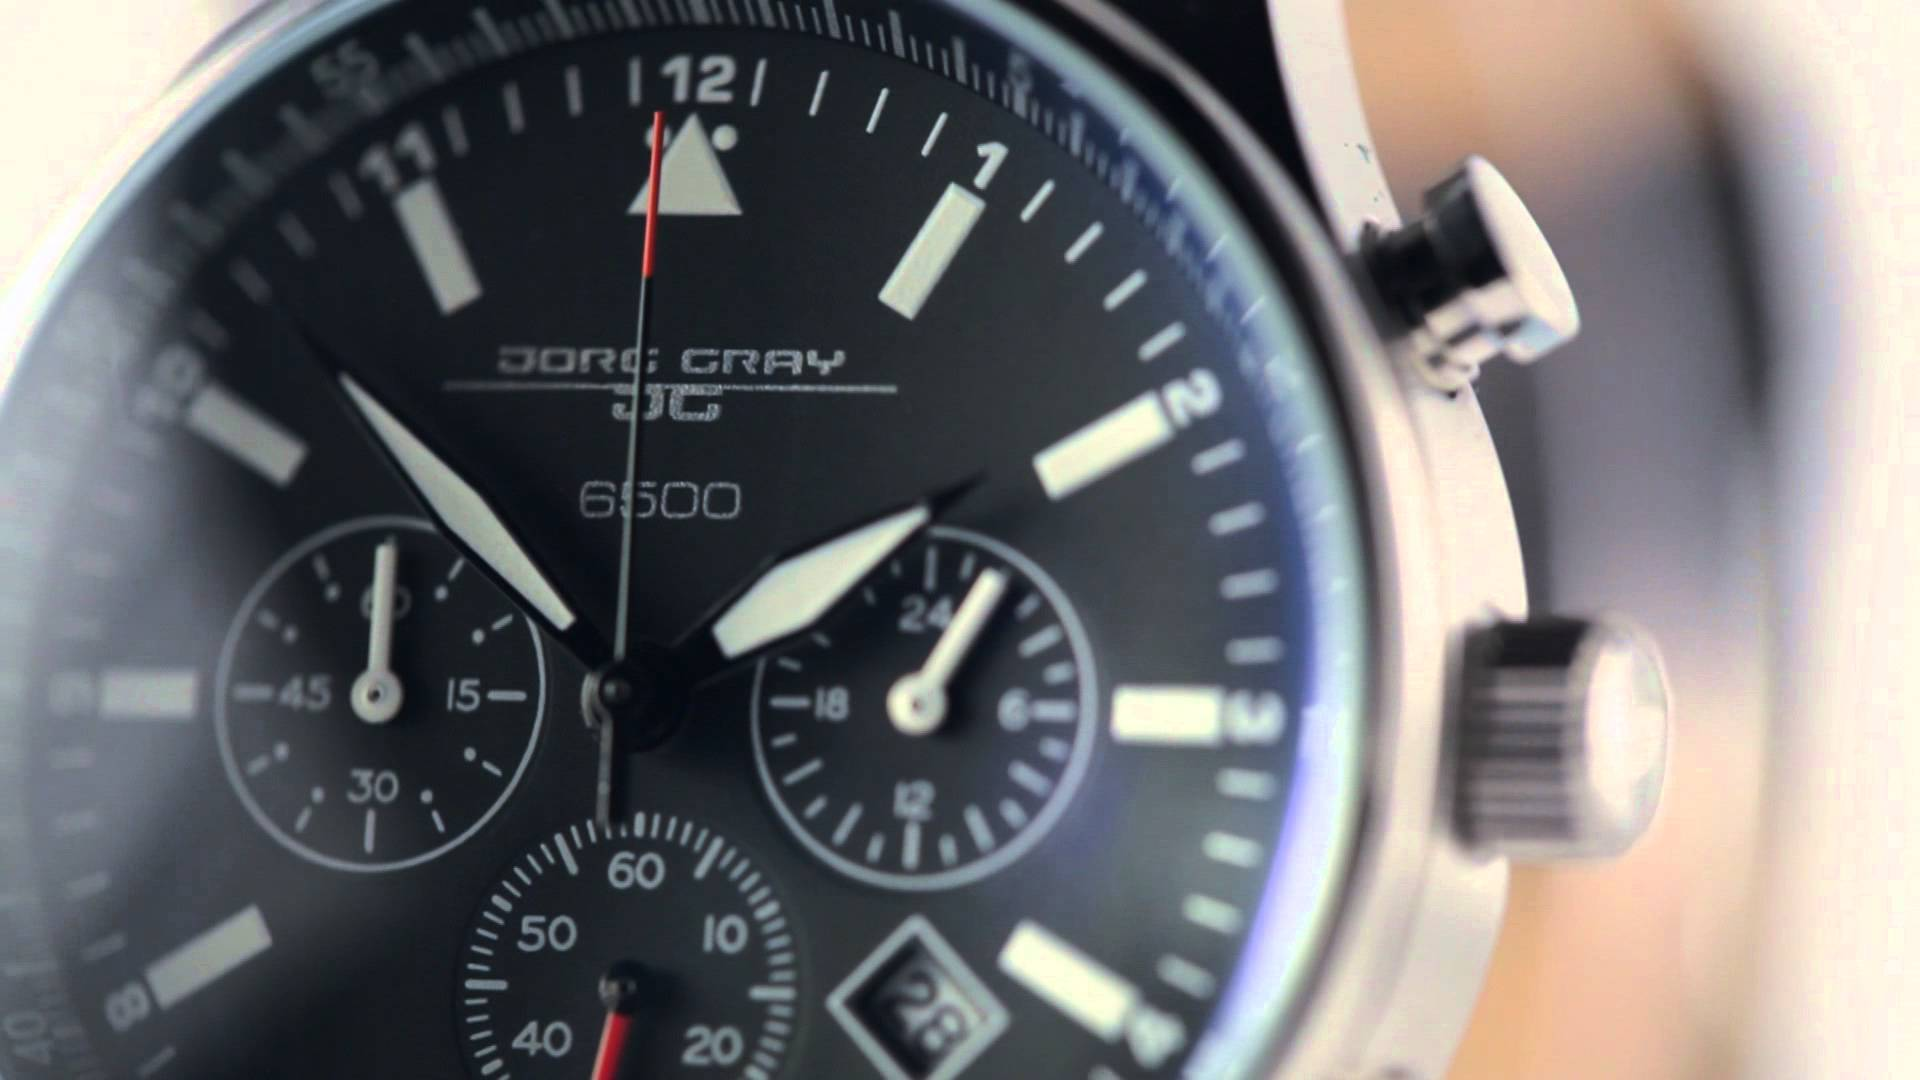 Jorg Gray JG6500 Analog Display Watch Review